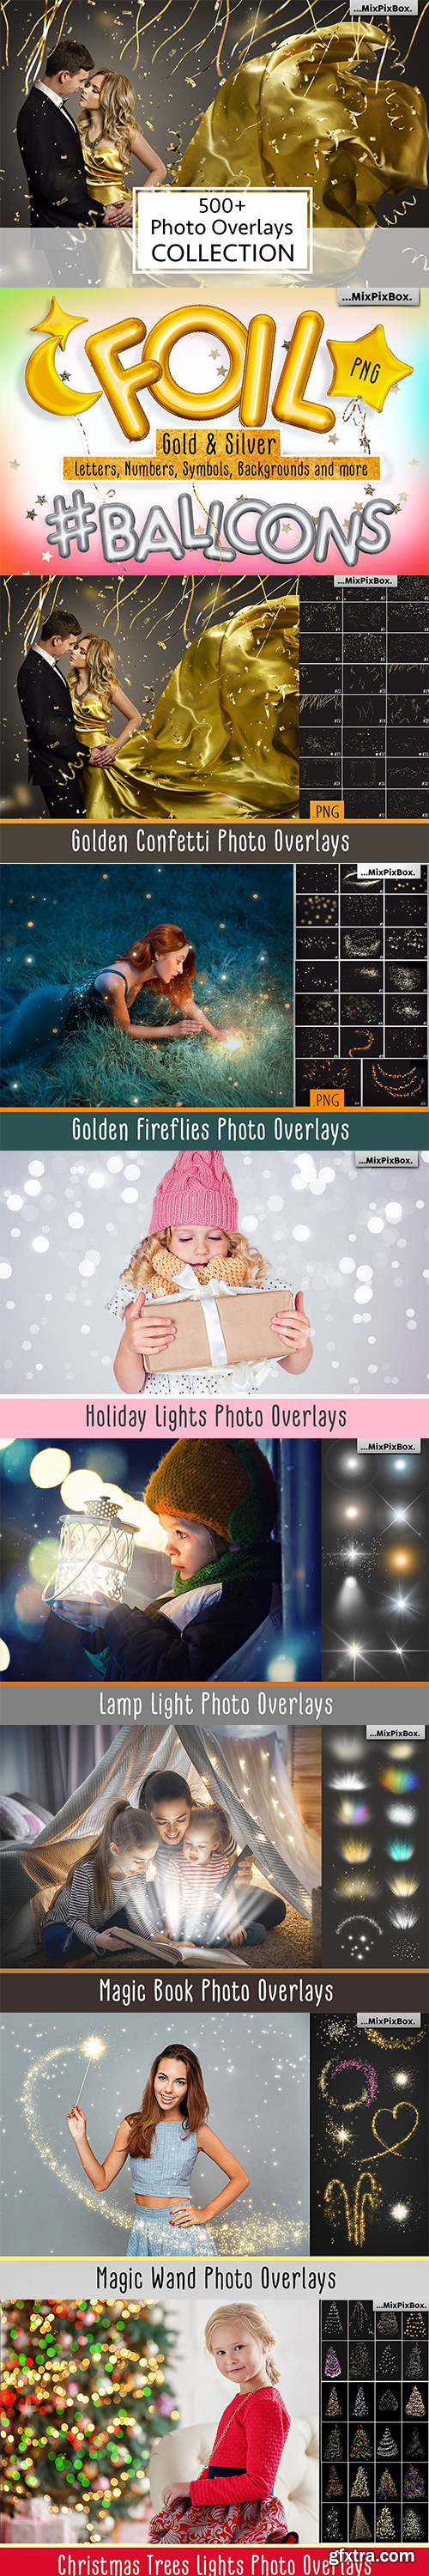 500+ Magical Photo Overlays & Backdrops, Water Splash, Smoke Bomb, Confetti, Magic Wands + more!